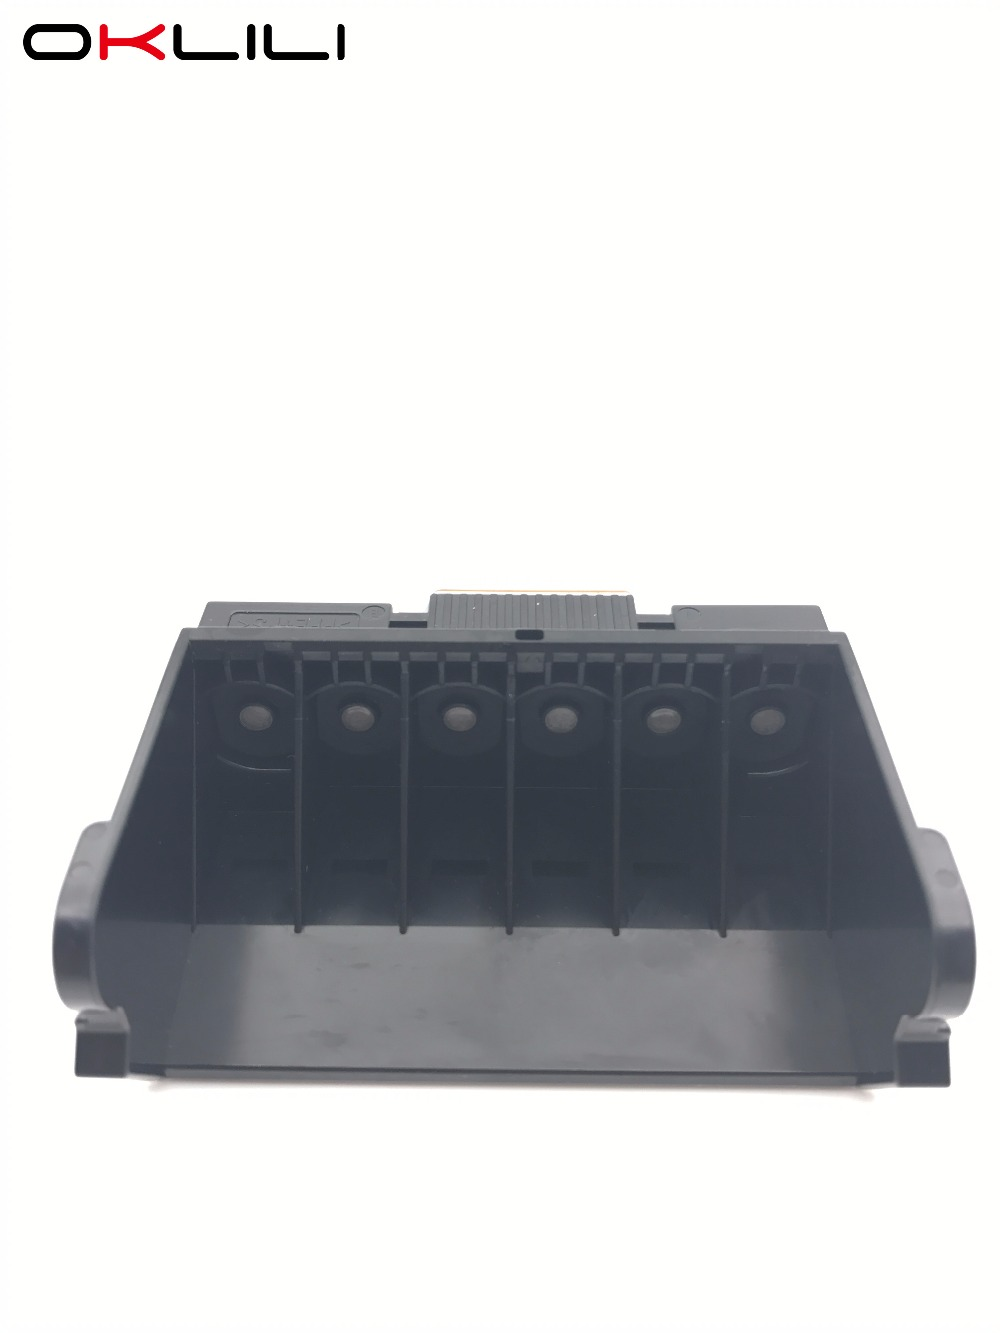 OKLILI ORIGINAL QY6-0063 QY6-0063-000 Printhead Print Head Printer Head for Canon iP6600D iP6700D iP6600 iP6700 genuine brand new qy6 0077 printhead print head for canon pro 9500 mark ii printer